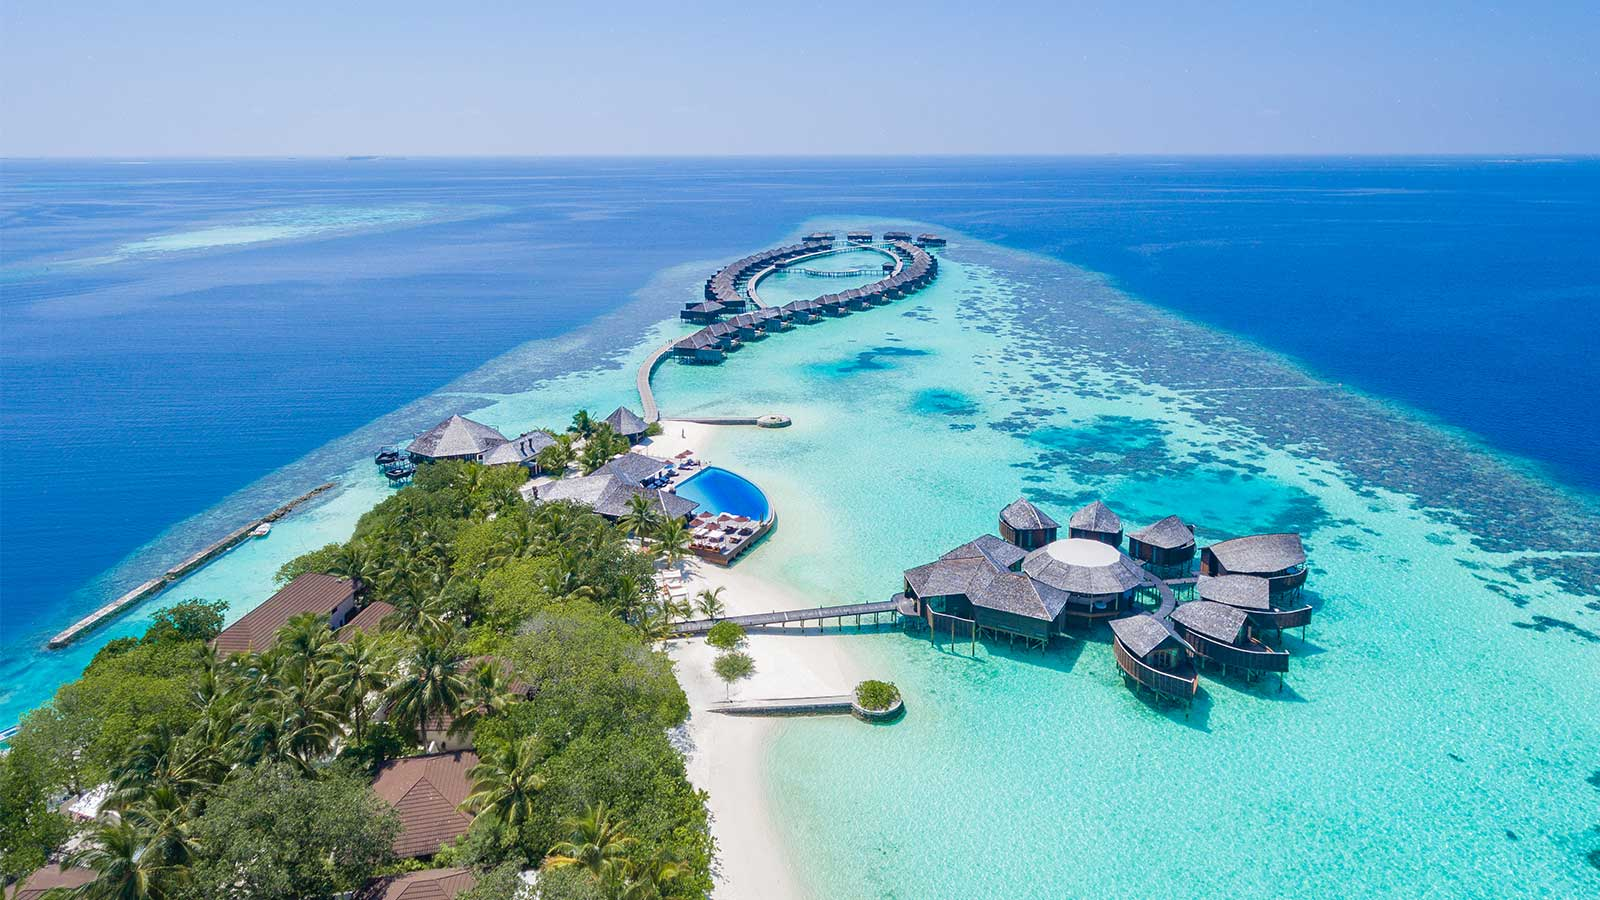 Lily Beach Resort Maldives aerial